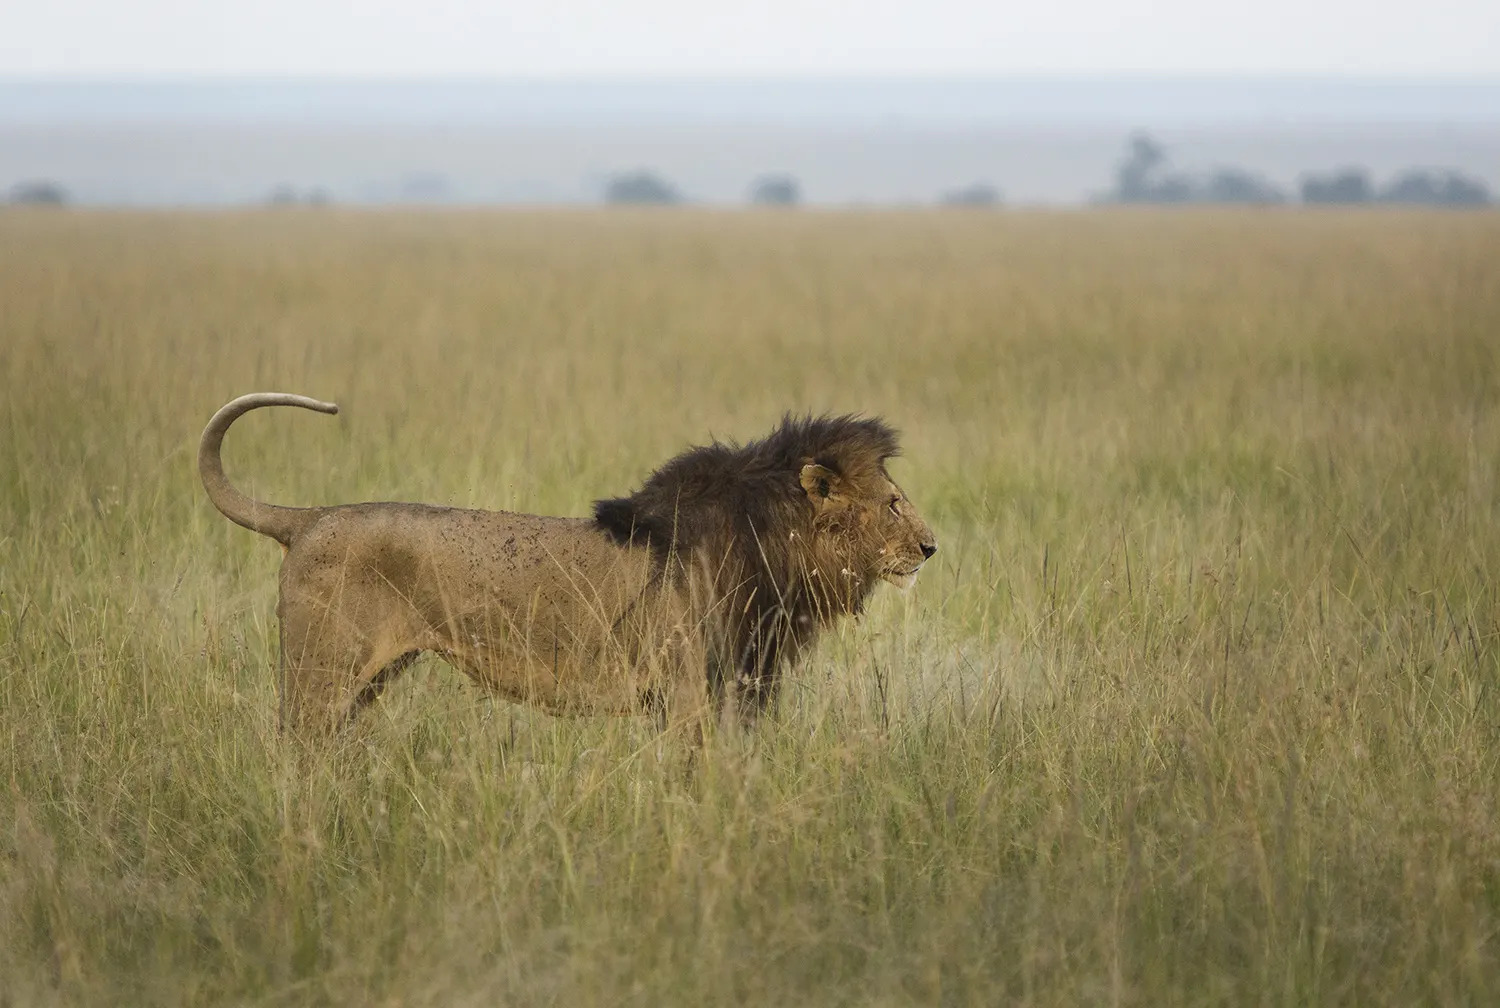 Male lion with half tail